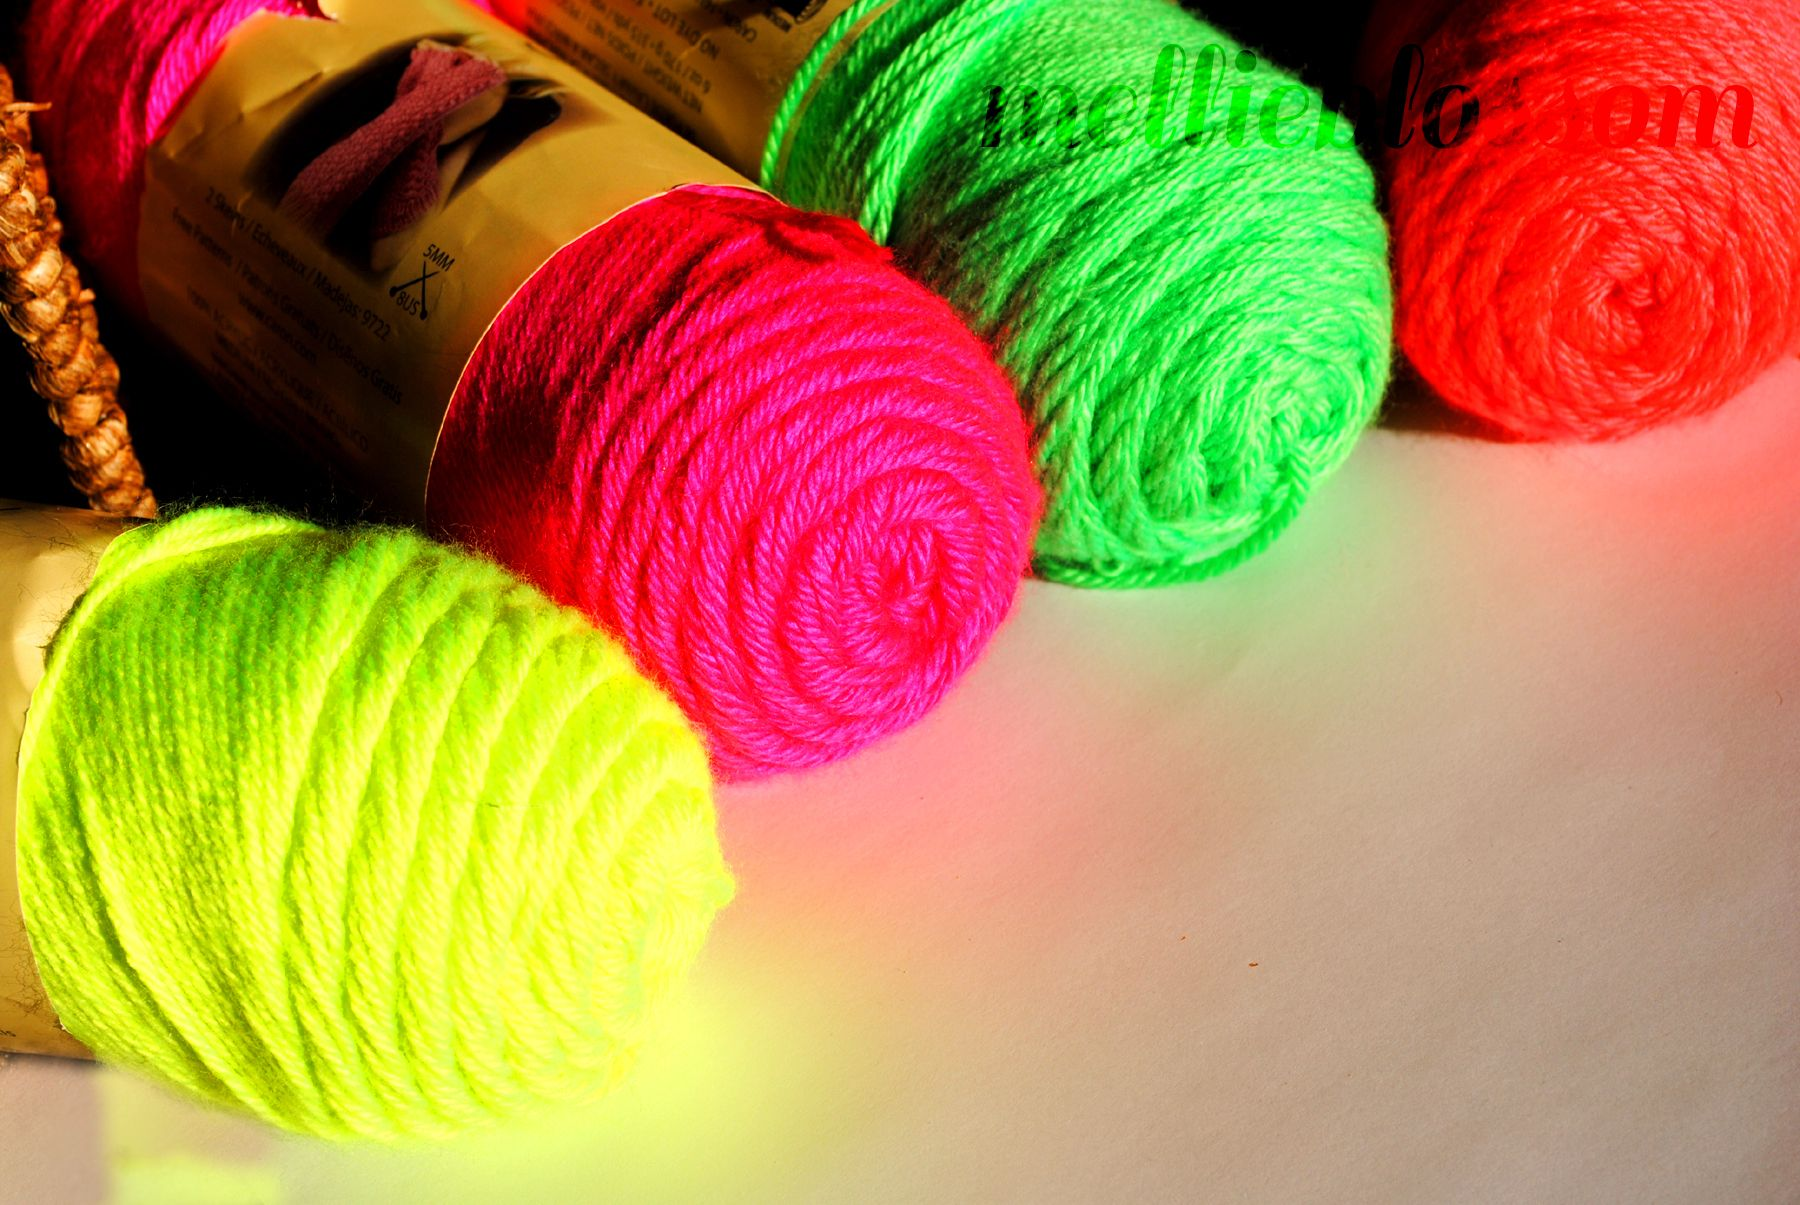 Four colorful bundles of knitting strings